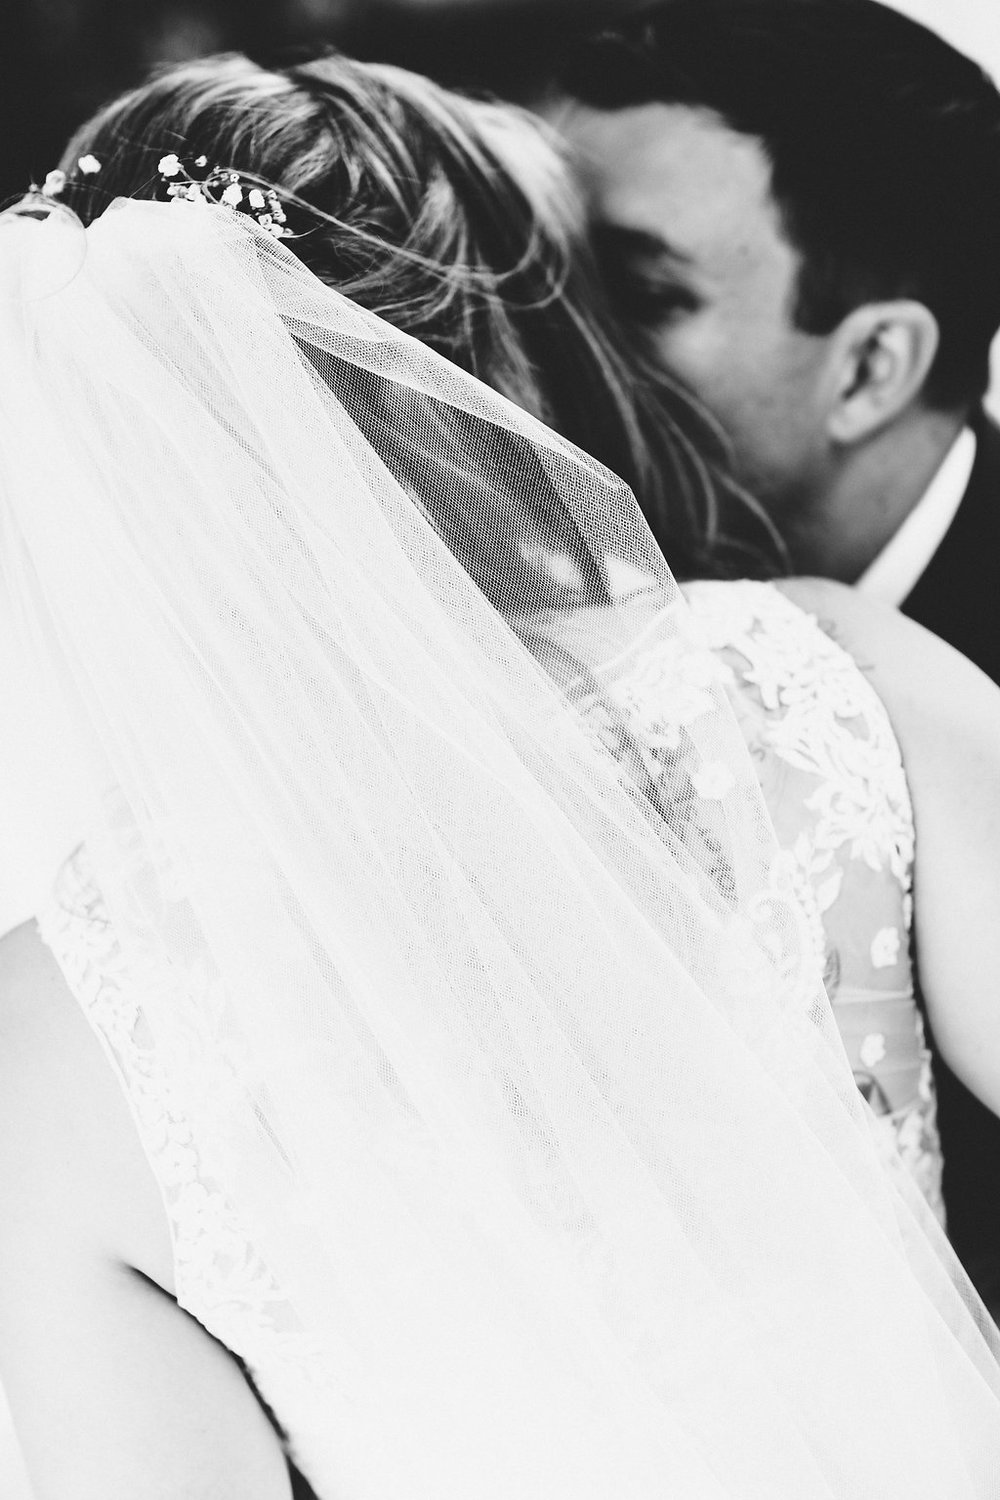 Nicole+Joe_Wedding_Seattle_McMennaminsBothell_6242015_67.jpg